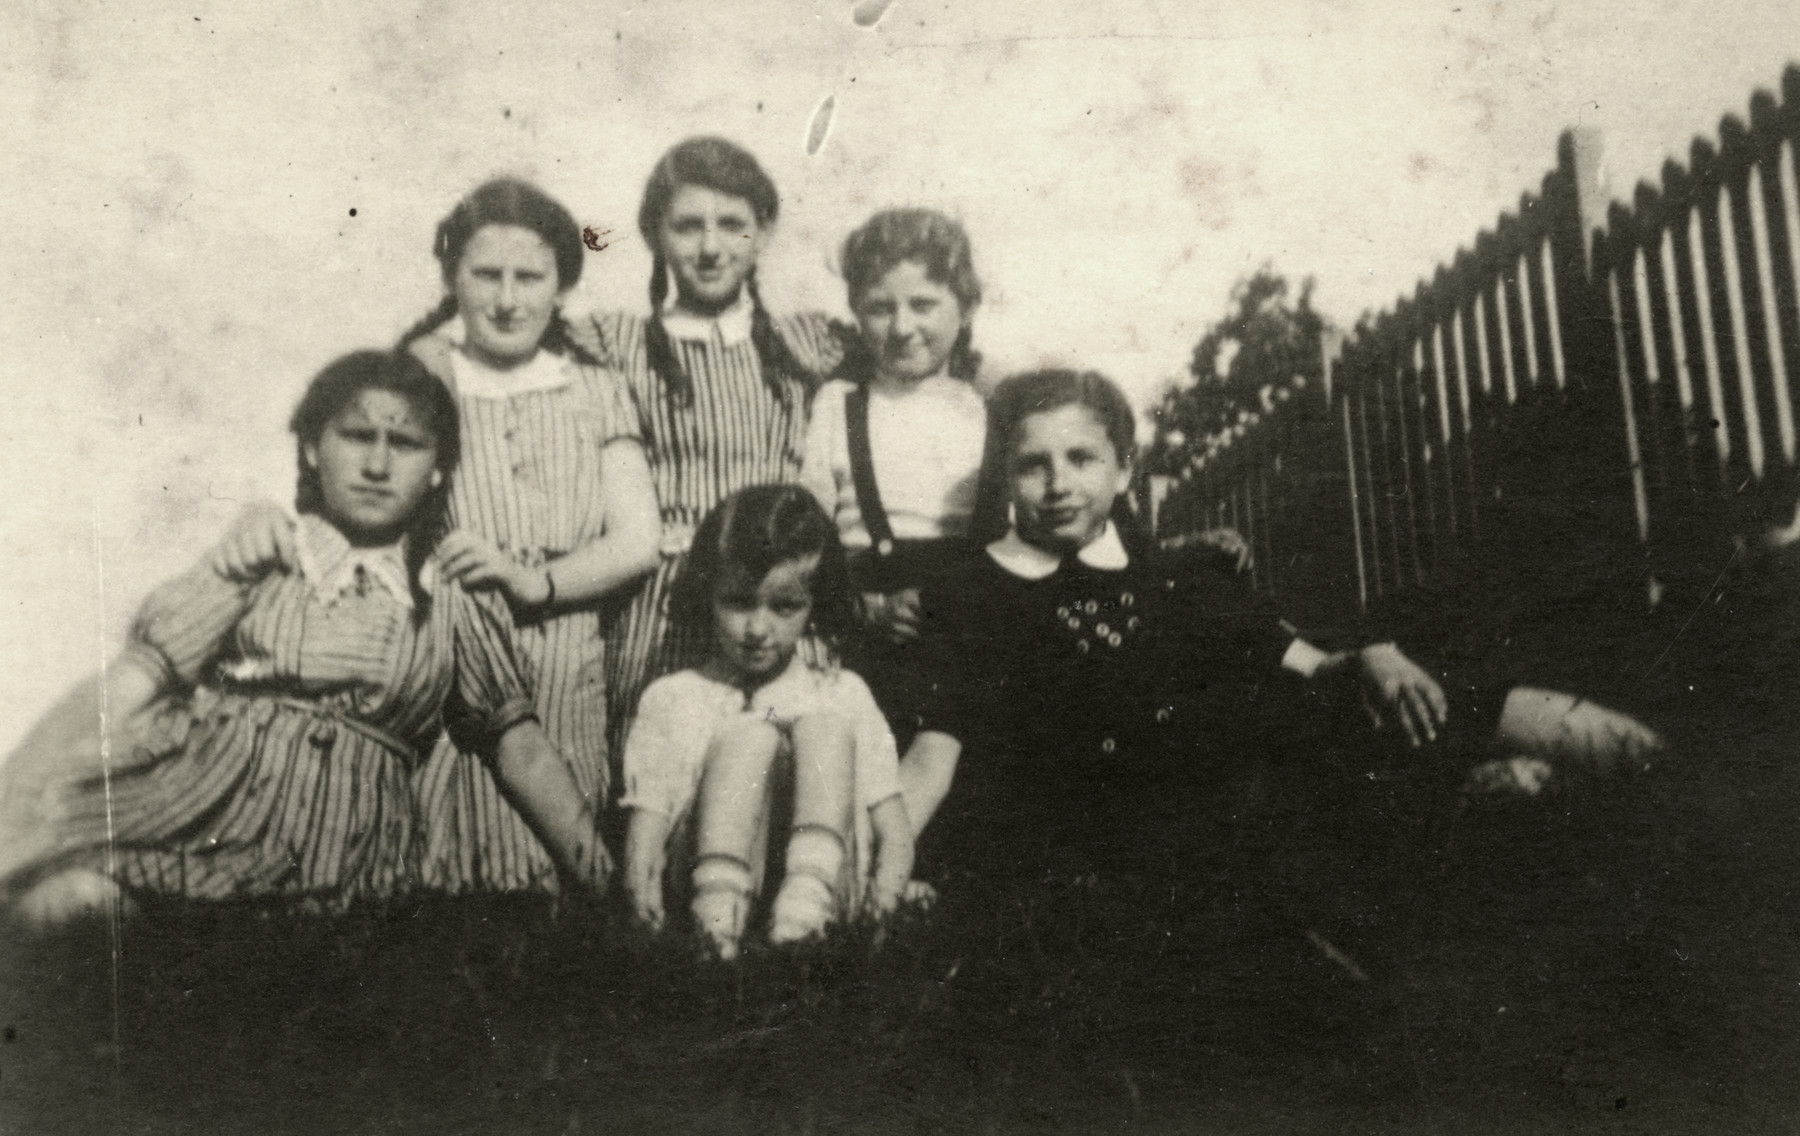 Group portrait of young Jewish girls in Chrzanow.  Among those pictured are Tova Lamm (second from right), Blanche (Blima) Ferber (back row, center), and Leah Ferber (front, center).